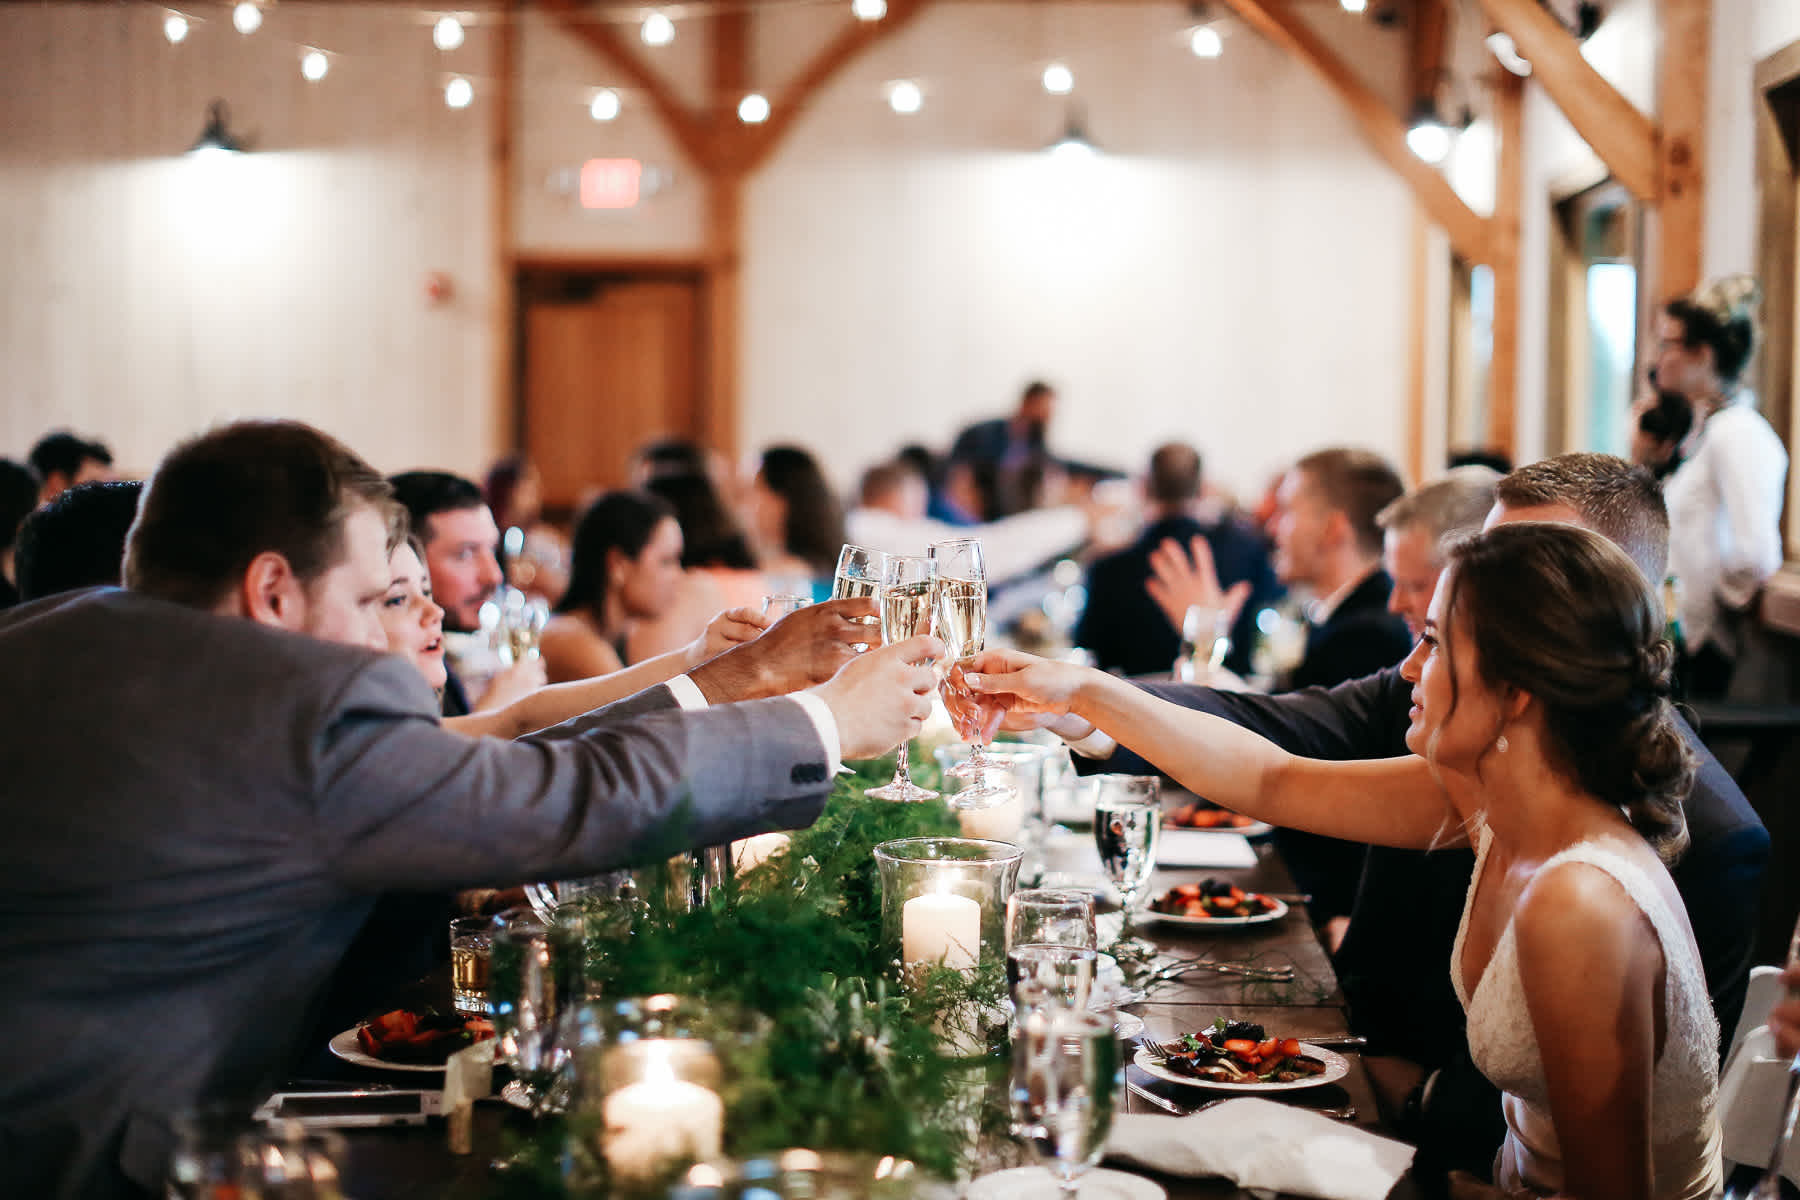 Pennsylvania-Newton-Rosebank-winery-spring-lifestyle-wedding-130